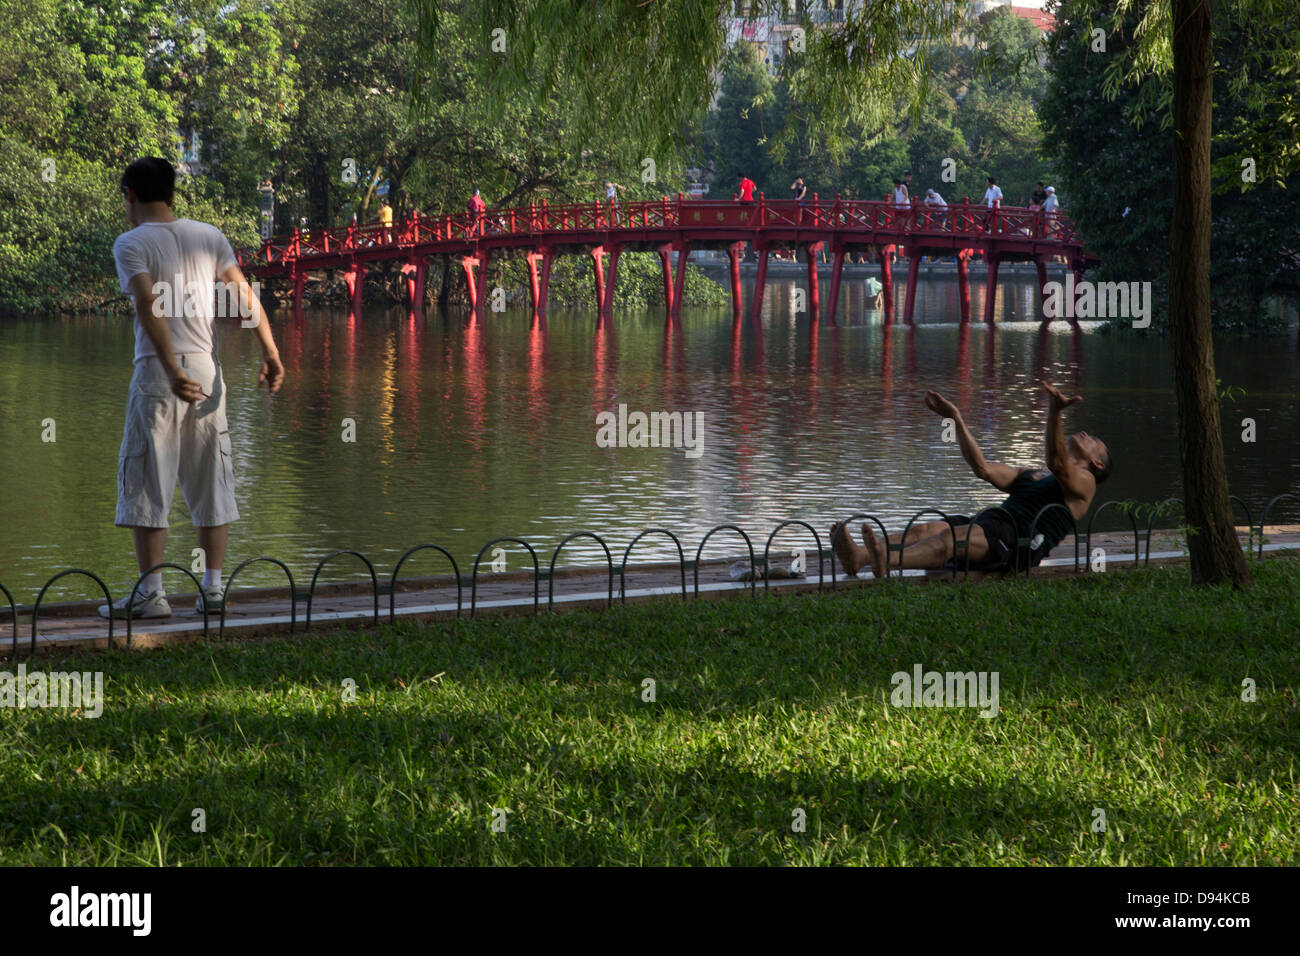 Hoan Kiem Lake or 'Lake of the Returned Sword' is a lake in Hanoi. The lake serves as a focal point for - Stock Image